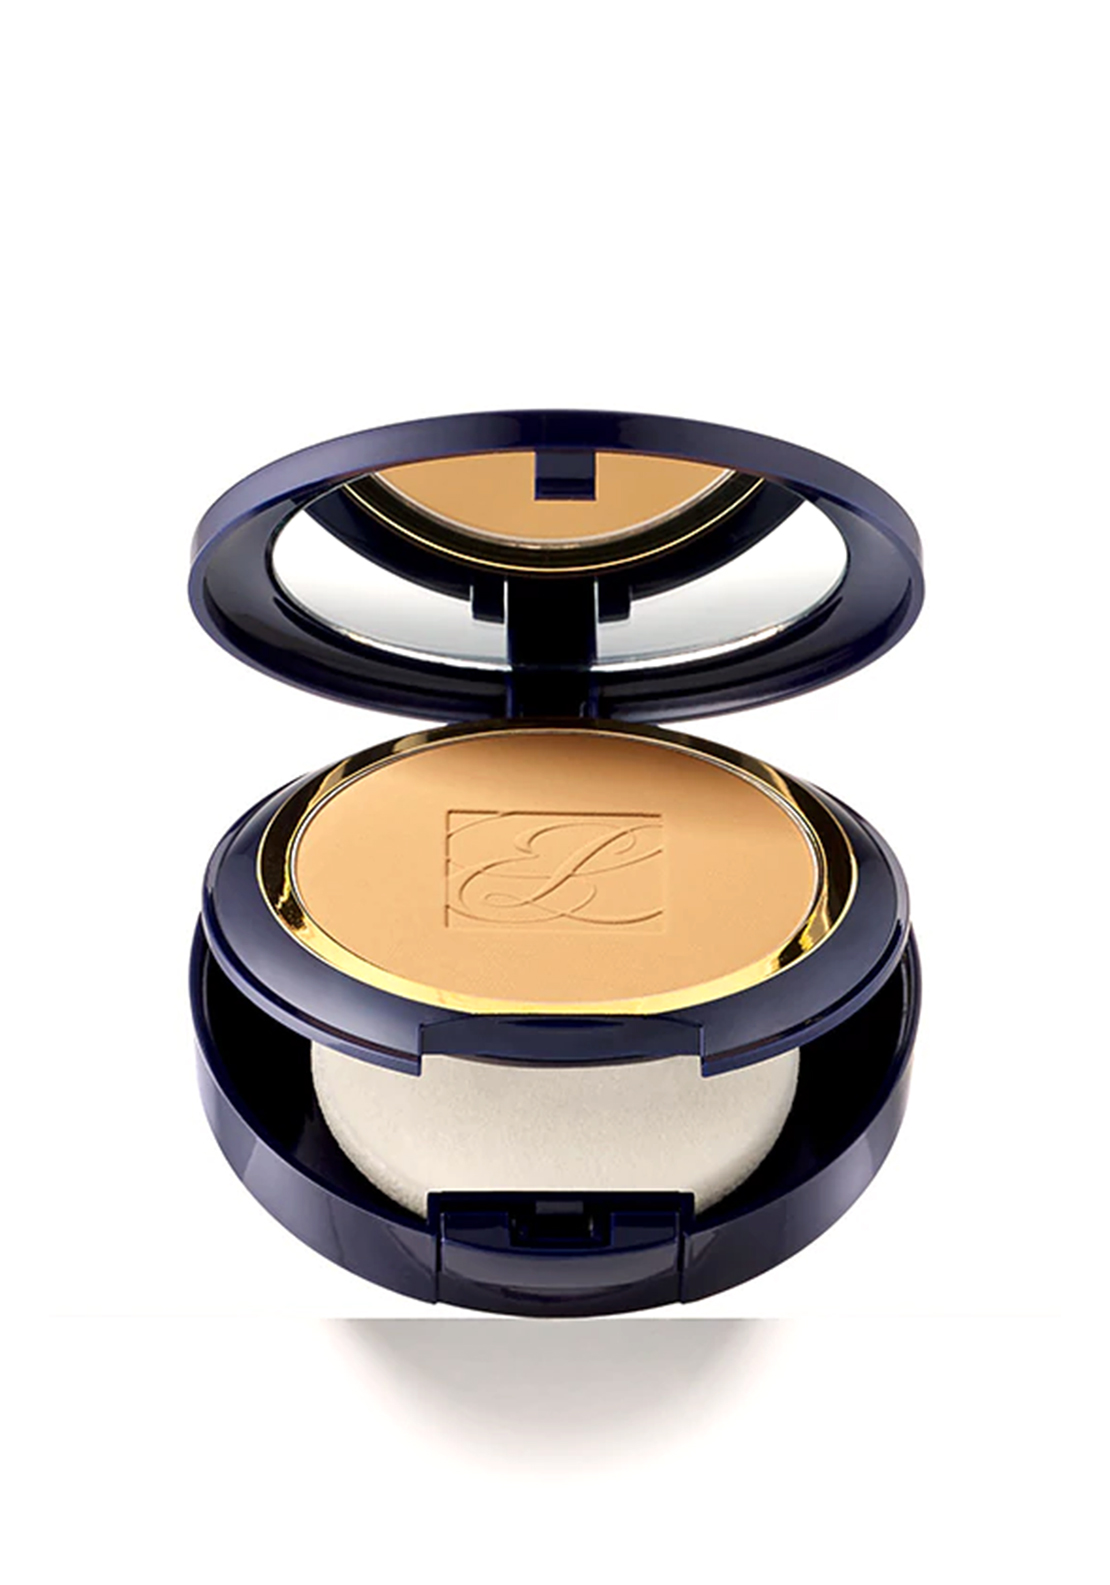 Estee Lauder Double Wear Stay In Place Powder Makeup, Tawny